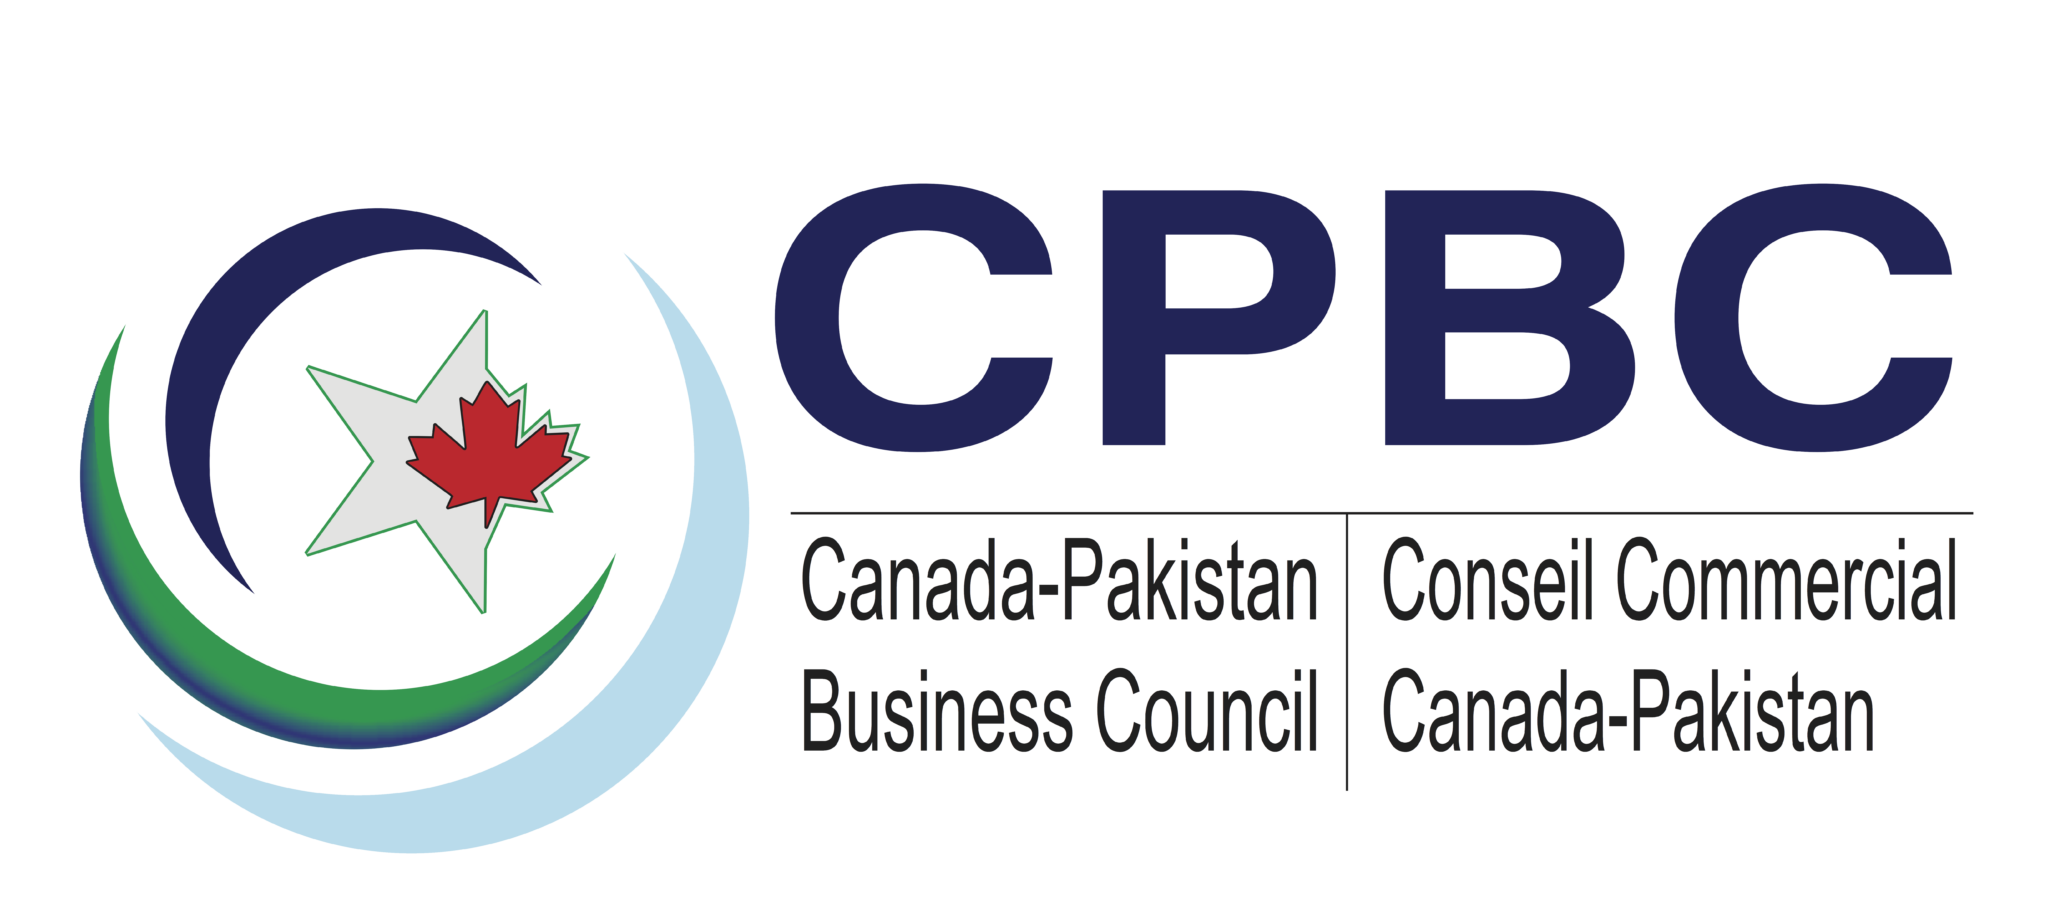 Canada-Pakistan Business Council